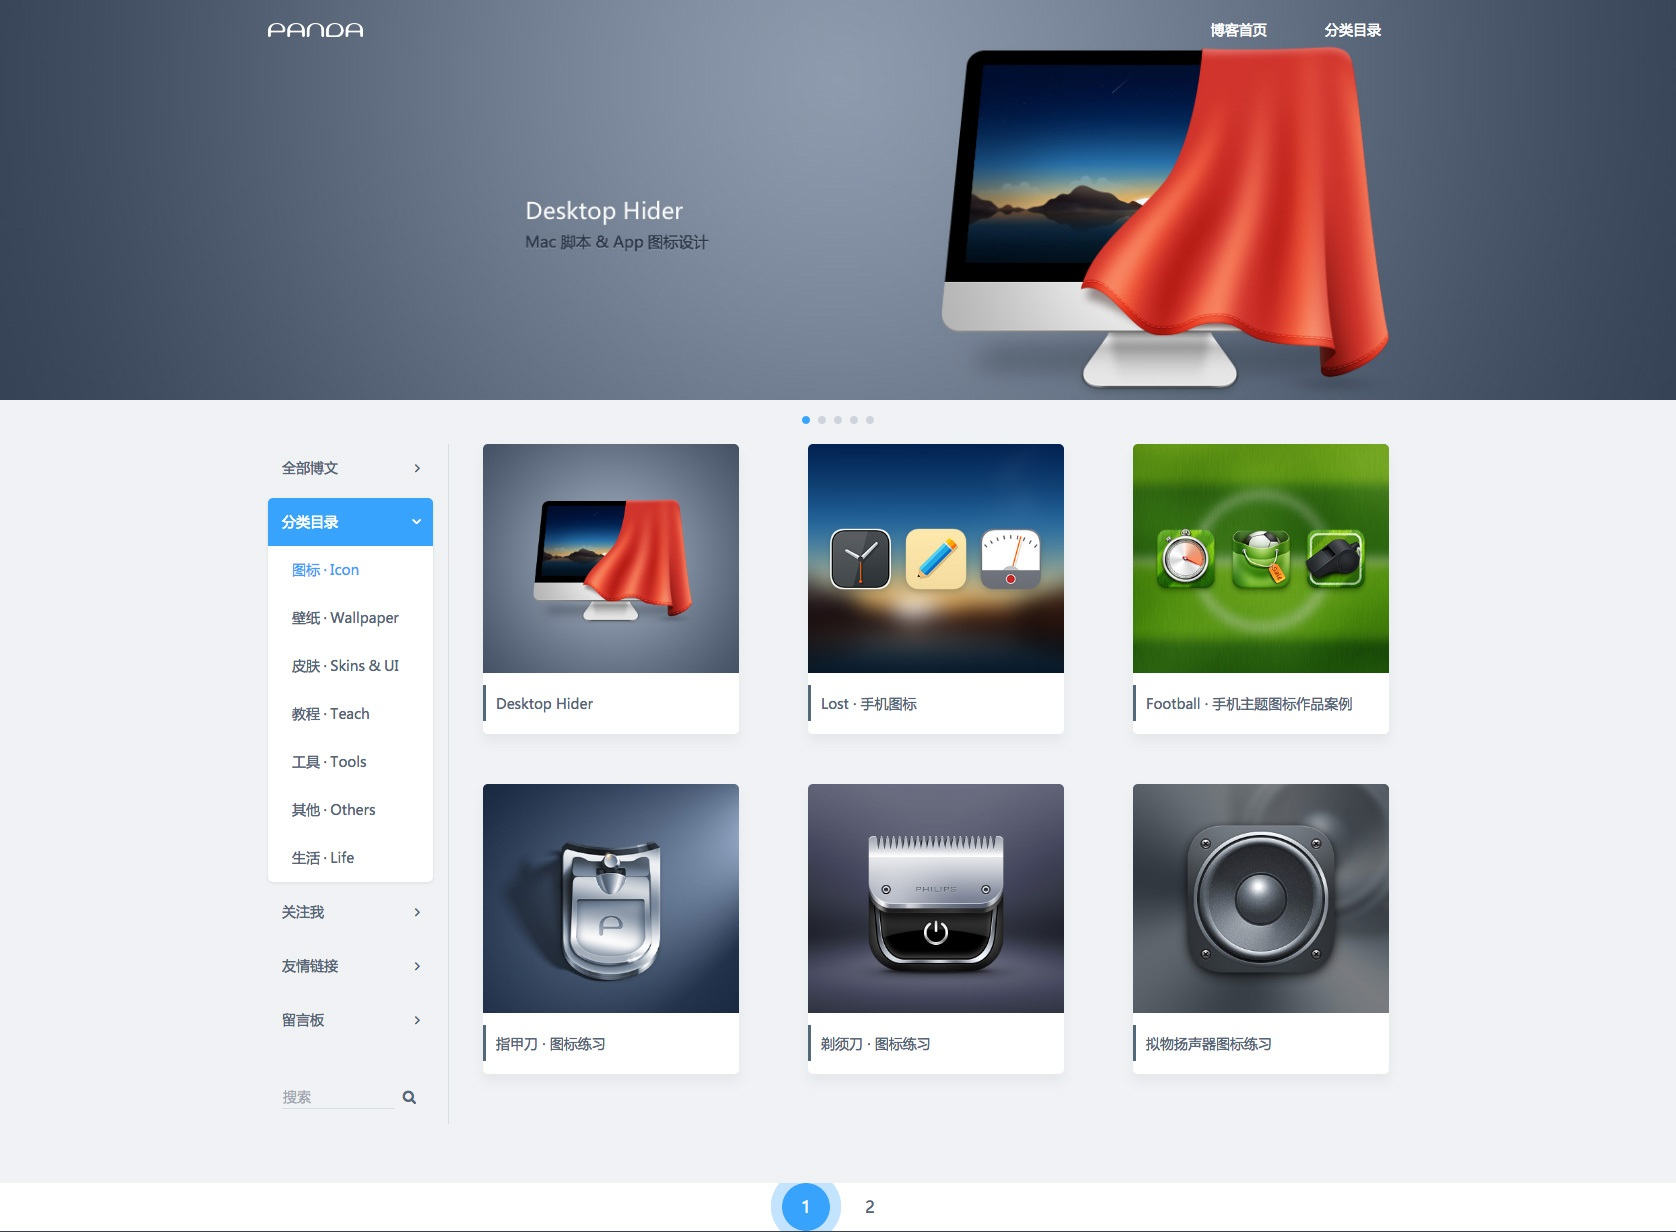 wordpress-Designer's Cards v1.5作品主题模板